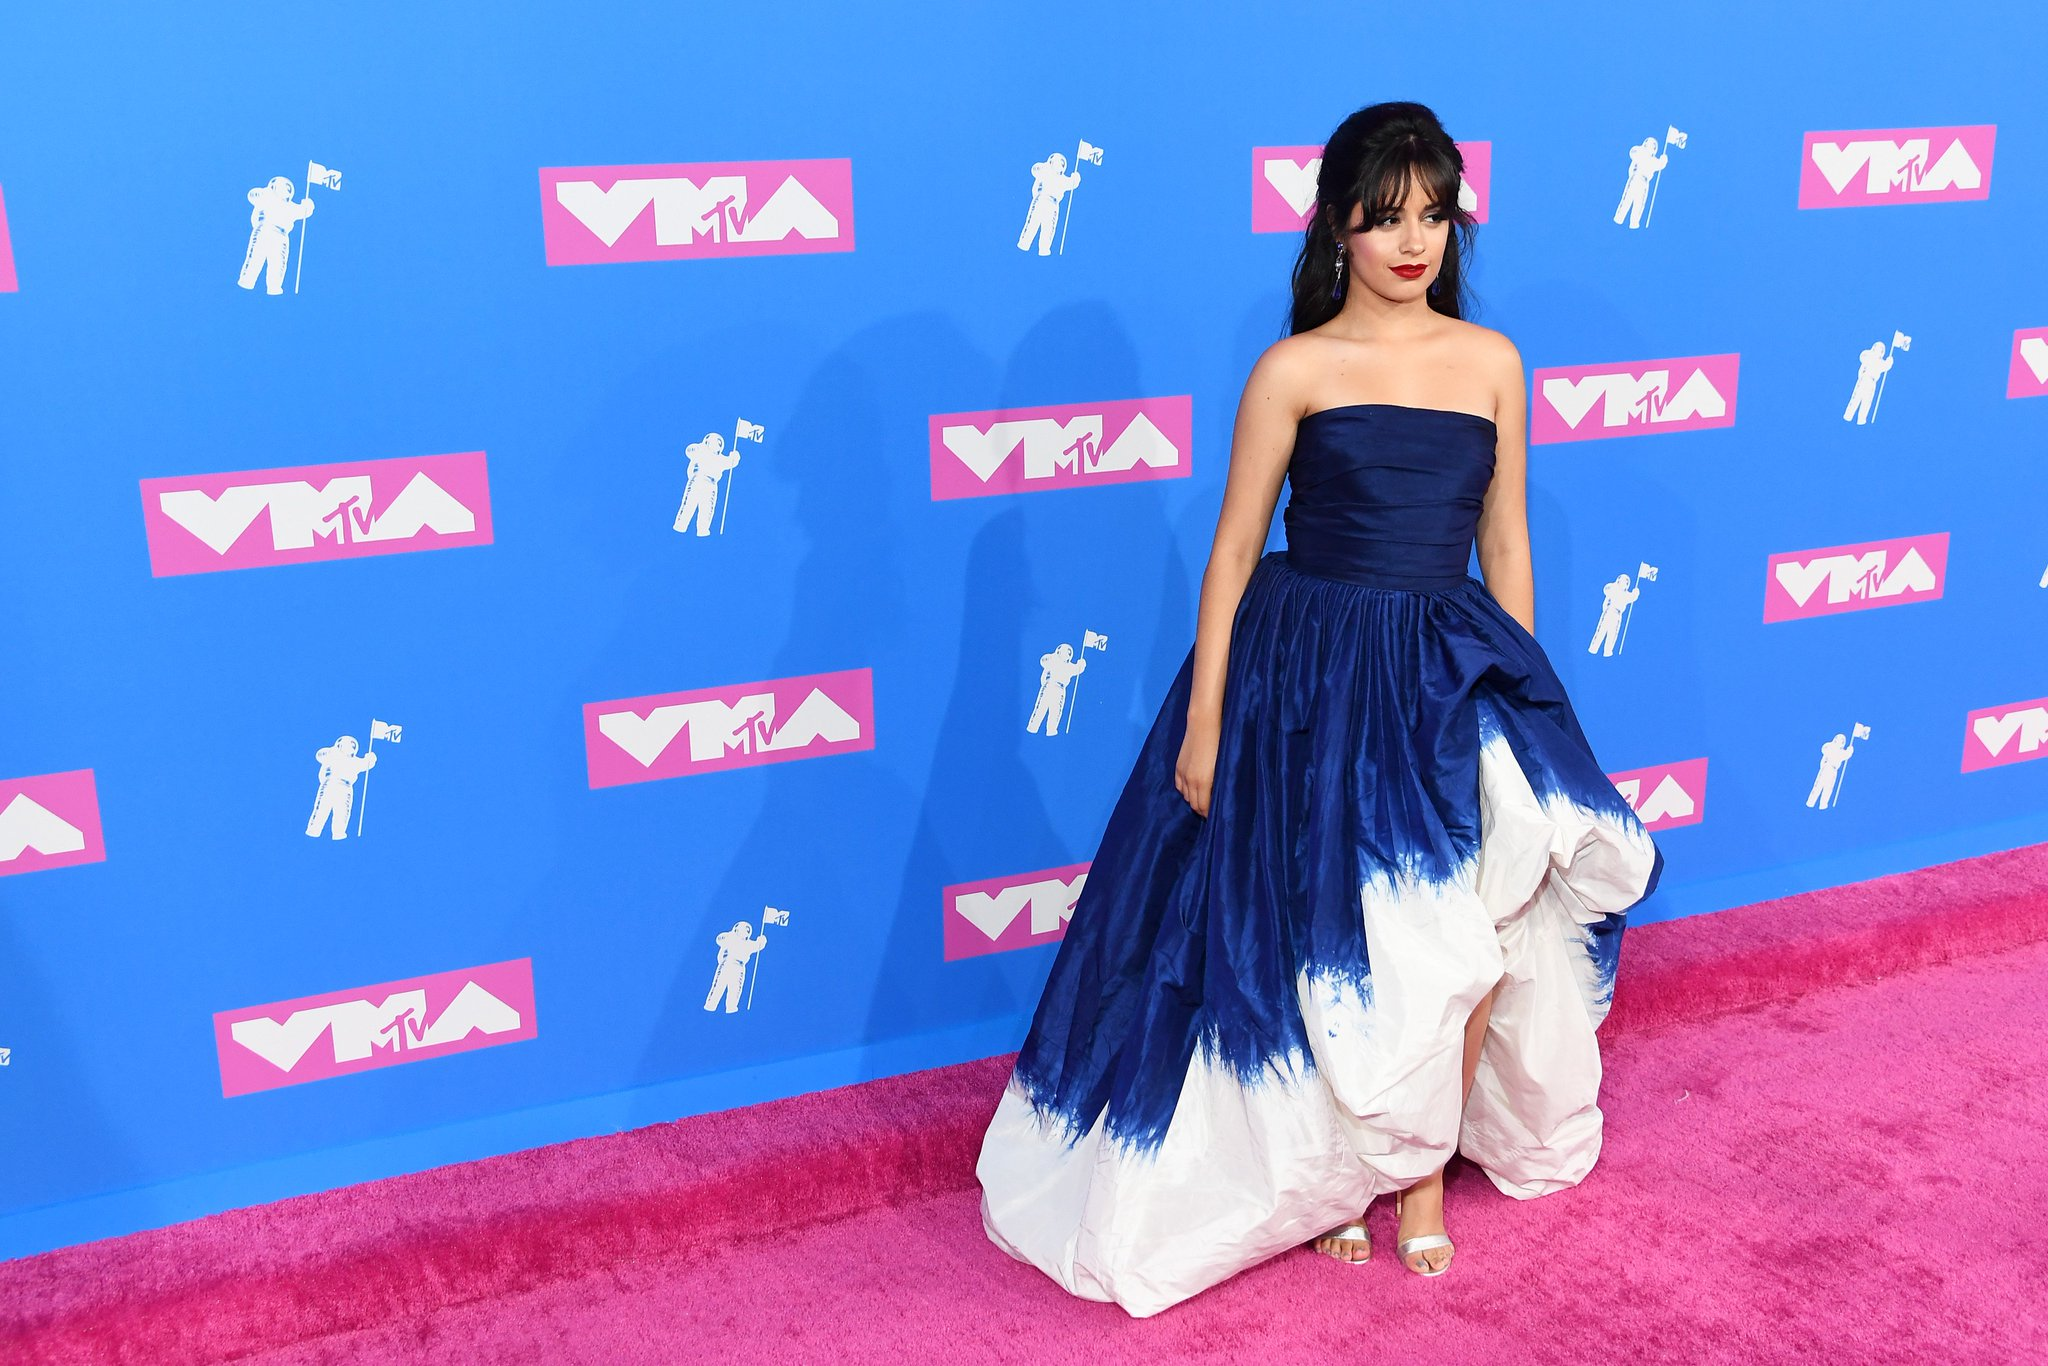 Slay us, @Camila_Cabello! Queen of the #VMAs pink carpet! https://t.co/OAdbGkIW4M https://t.co/c3KbG0zfw8